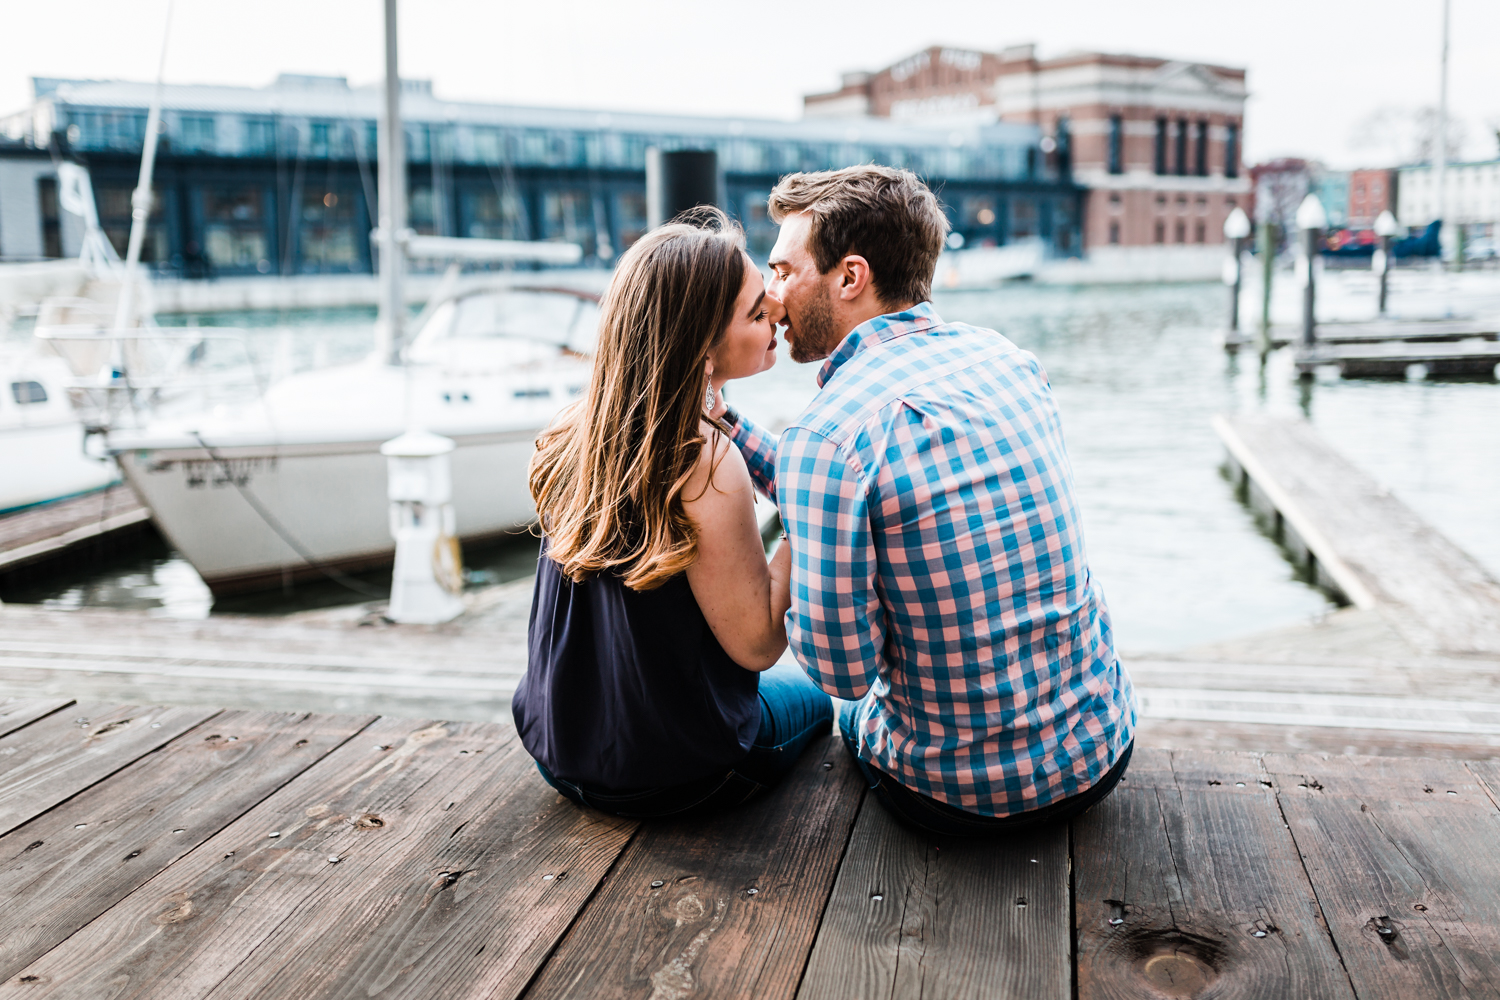 nautical Fells Point engagement session ideas - best locations in Baltimore for an engagement session